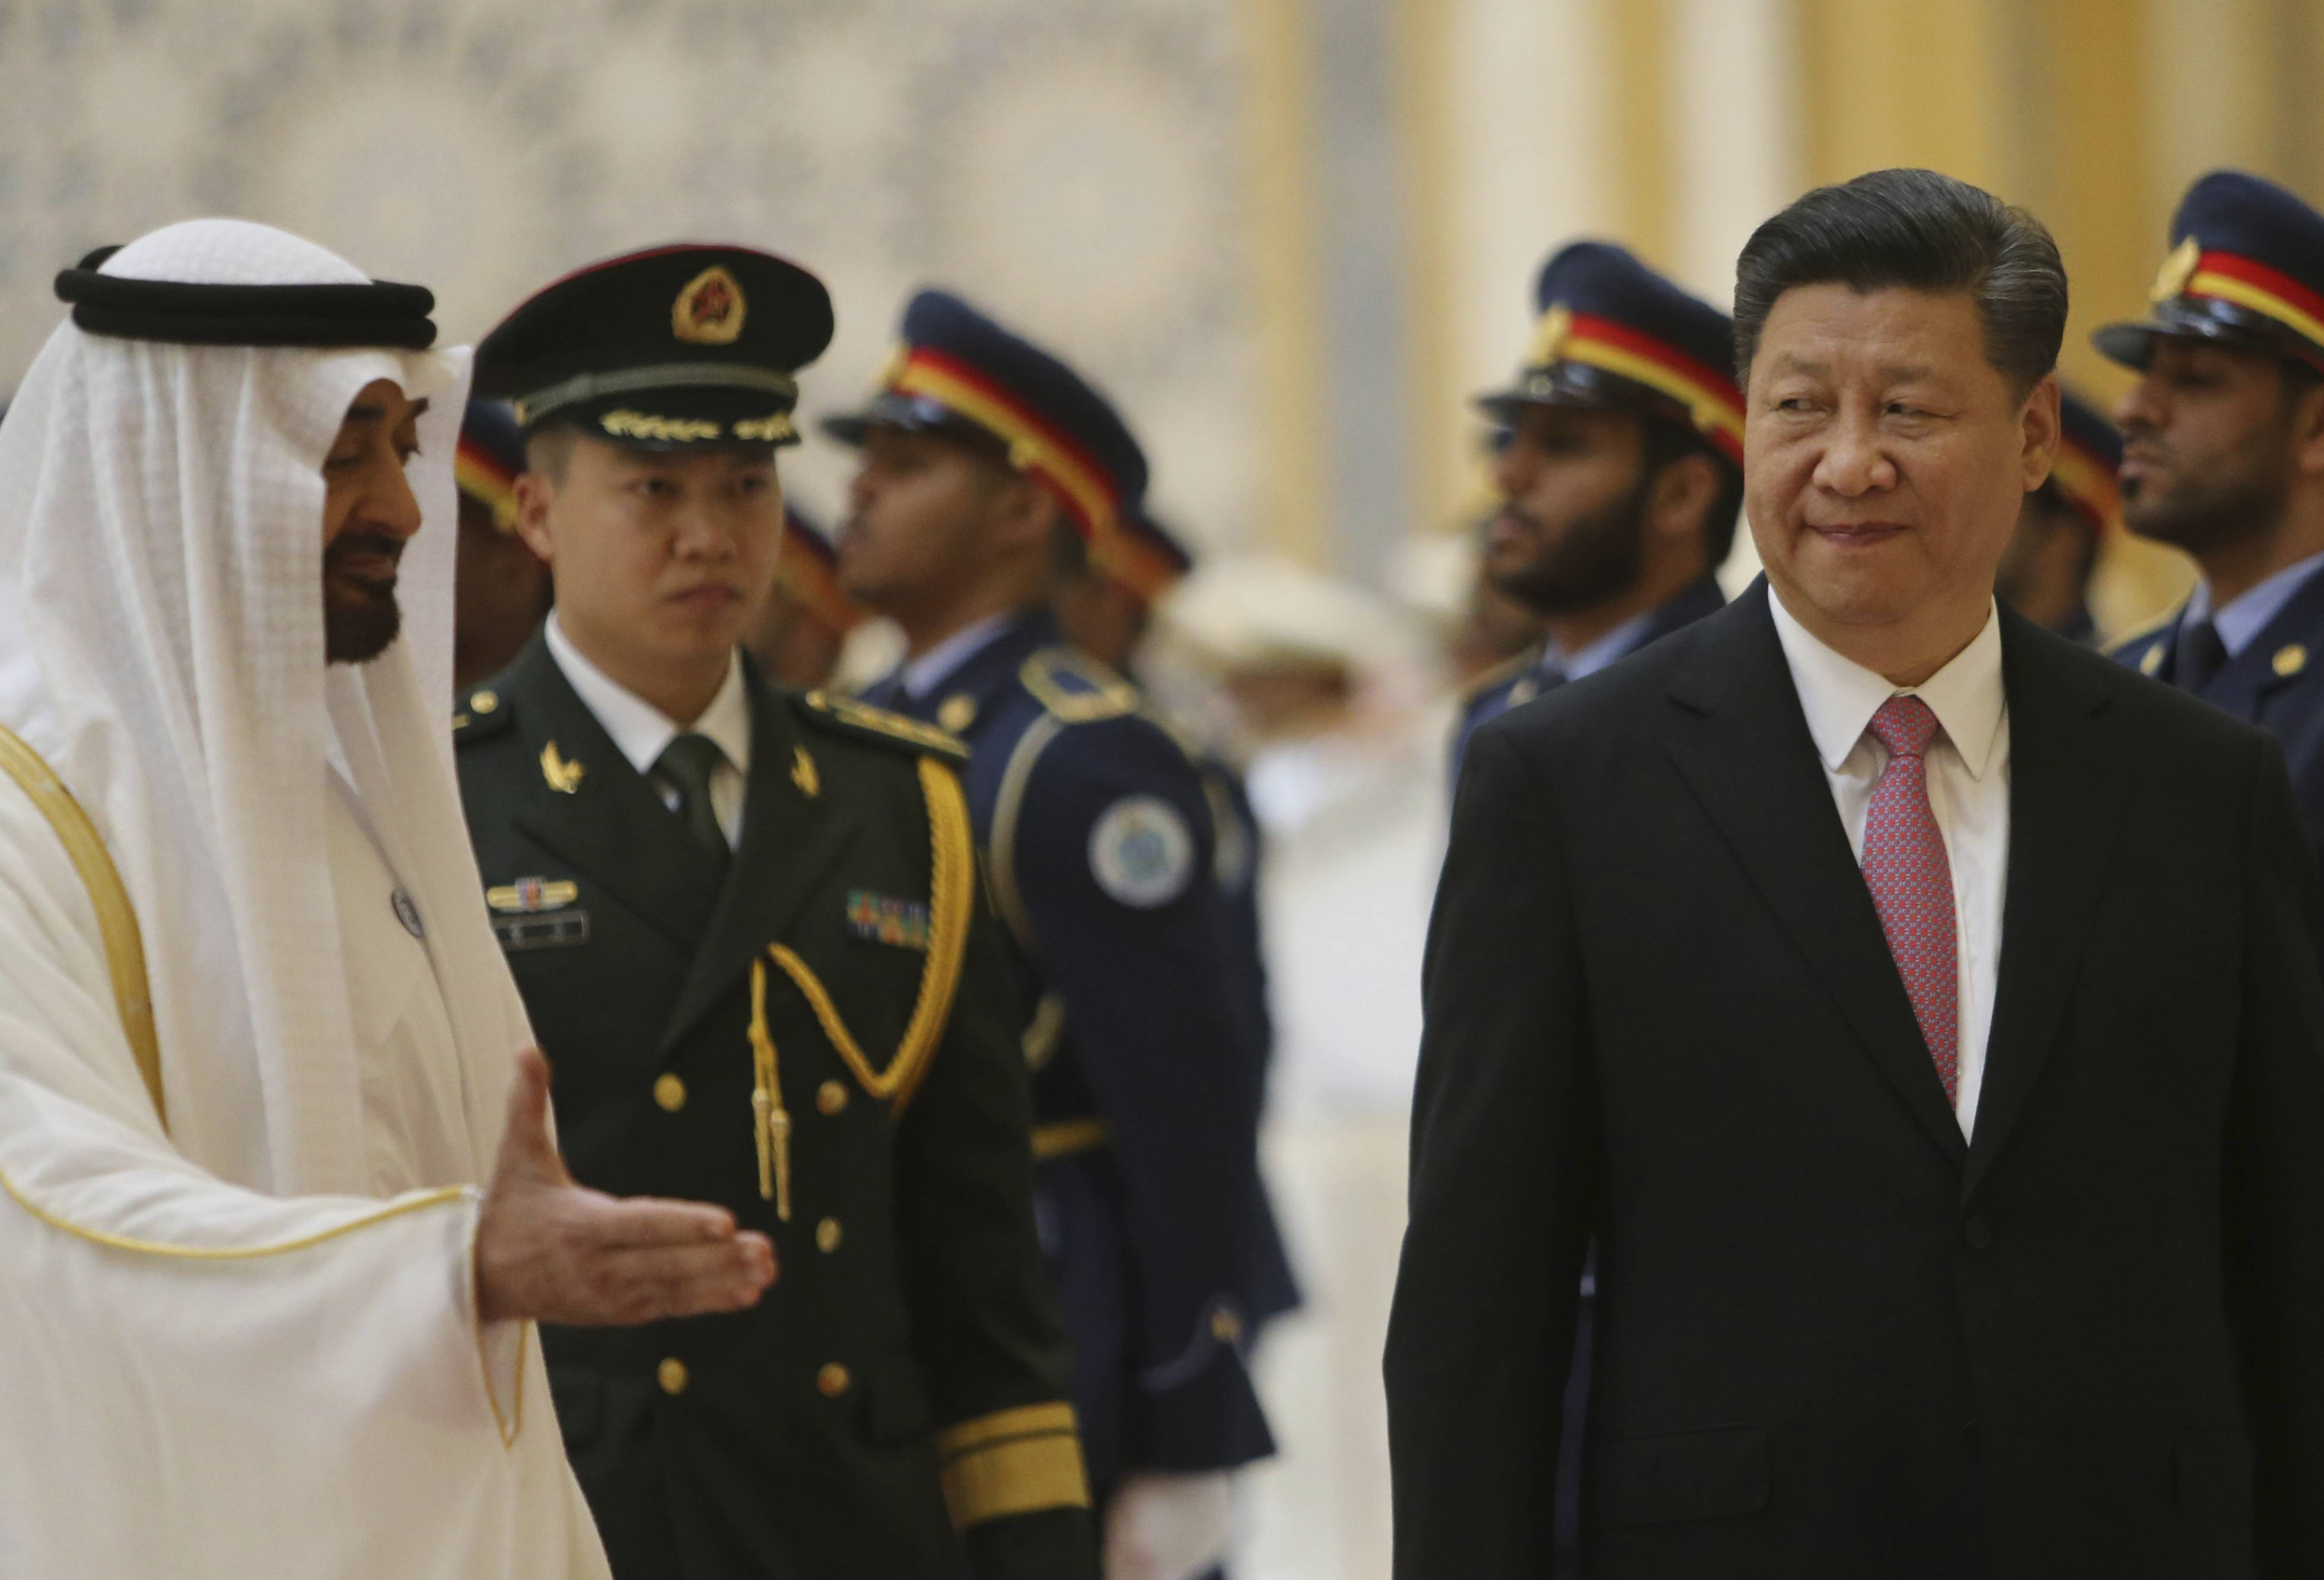 Sheikh Mohamed bin Zayed Al Nahyan, Crown Prince of Abu Dhabi, left, gestures Friday to Chinese President Xi Jinping, right, with Deputy Supreme Commander of the UAE Armed Forces, second left after reviewing the Guard of Honour, at the Presidential Palace in Abu Dhabi, United Arab Emirates.